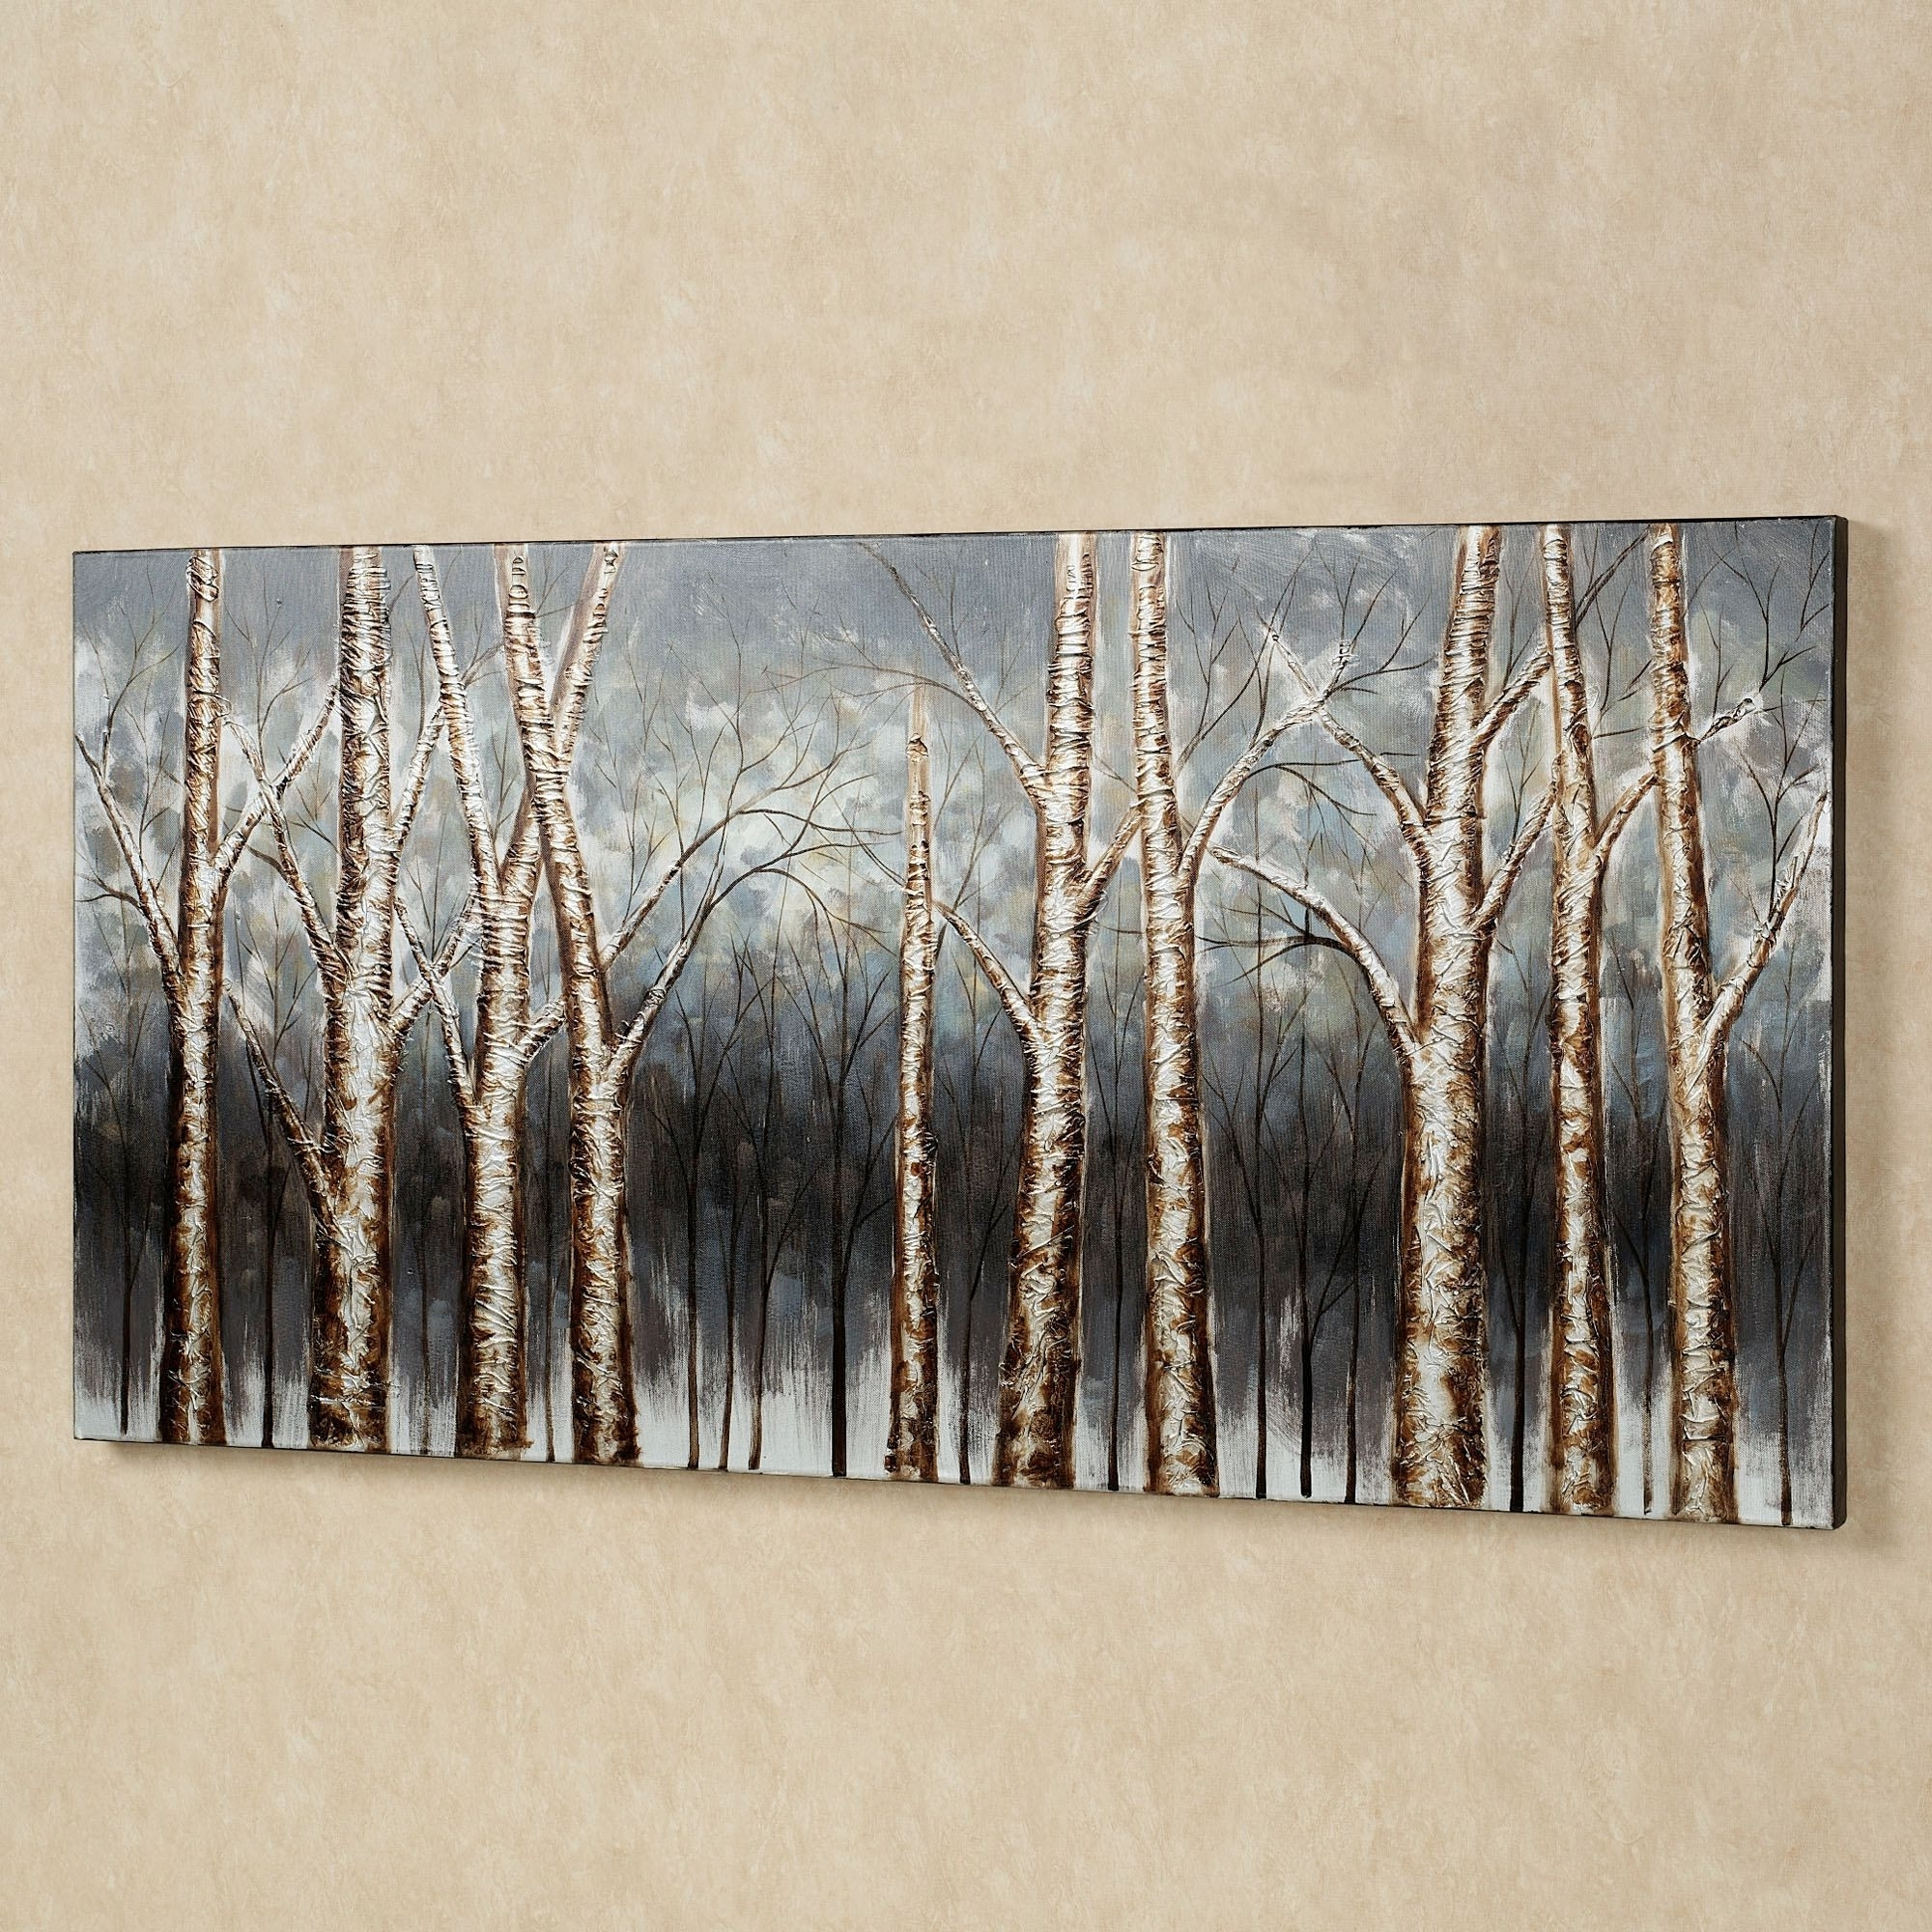 Wall Art Designs: Beautiful Gallery Of Canvas Wall Art Trees With With Regard To Trendy Horizontal Canvas Wall Art (View 11 of 15)